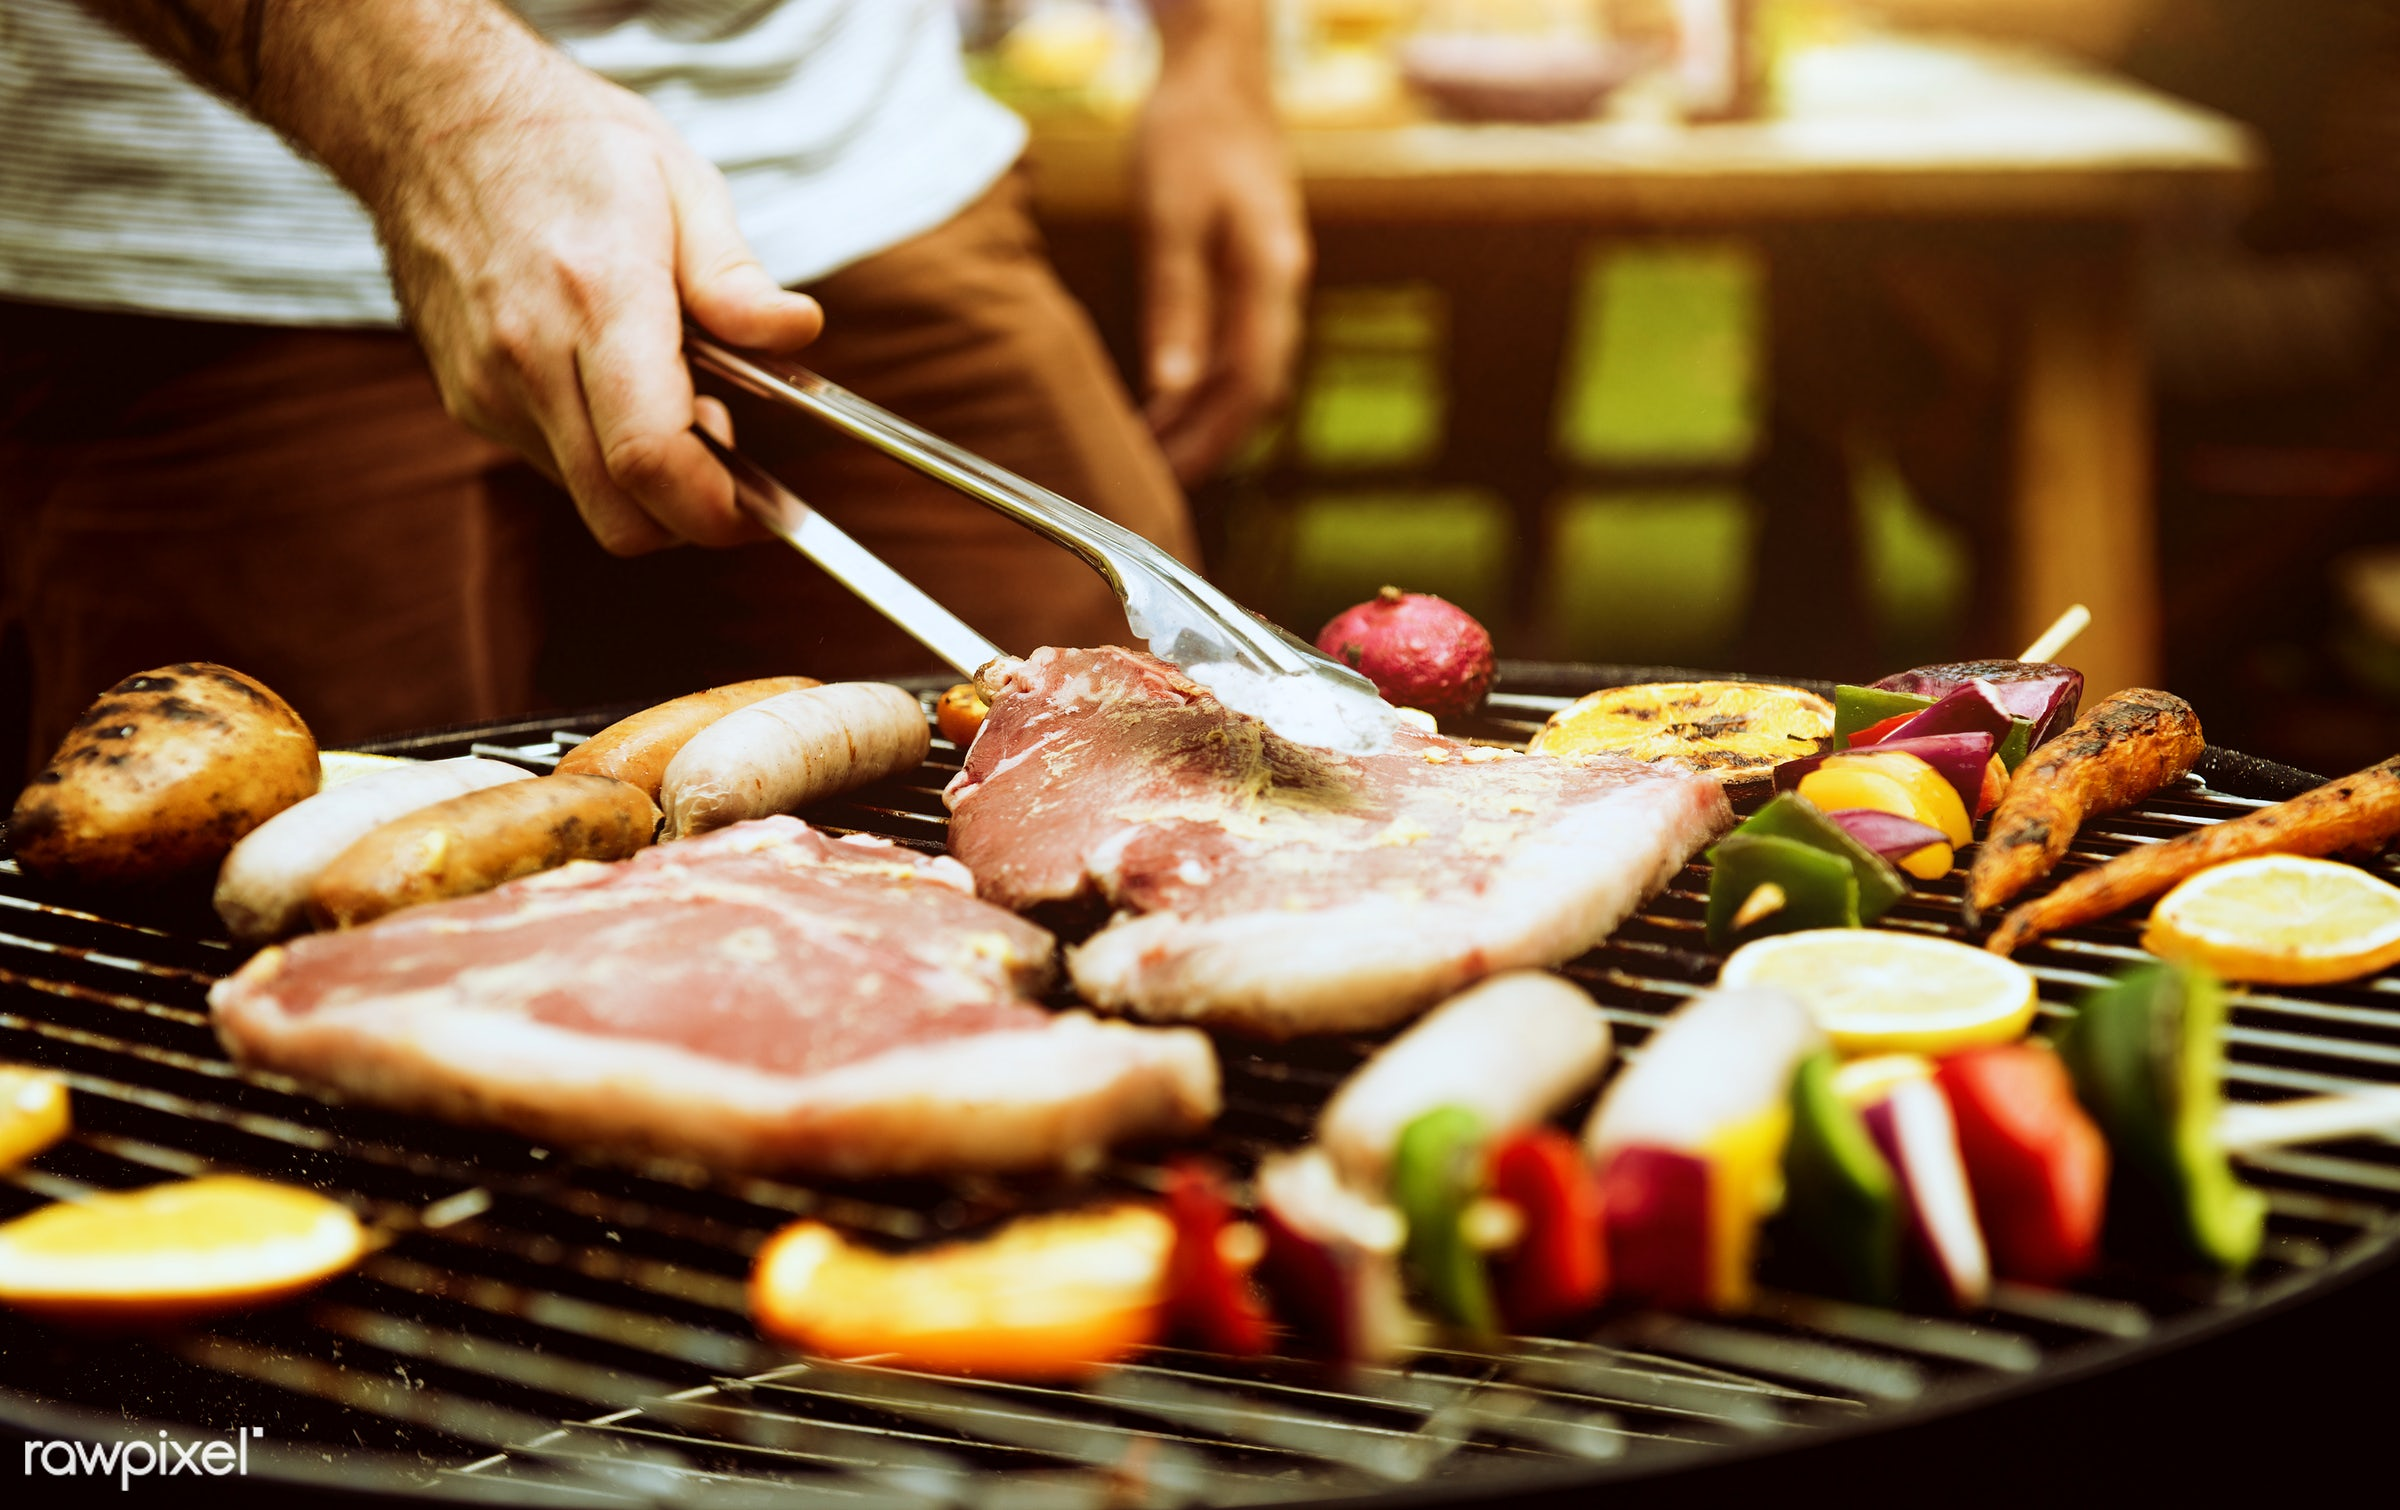 bbq, activity, barbecue, charcoals, cooking, diverse, food, grass, grill, group, hands, holiday, homemade, leisure, meal,...